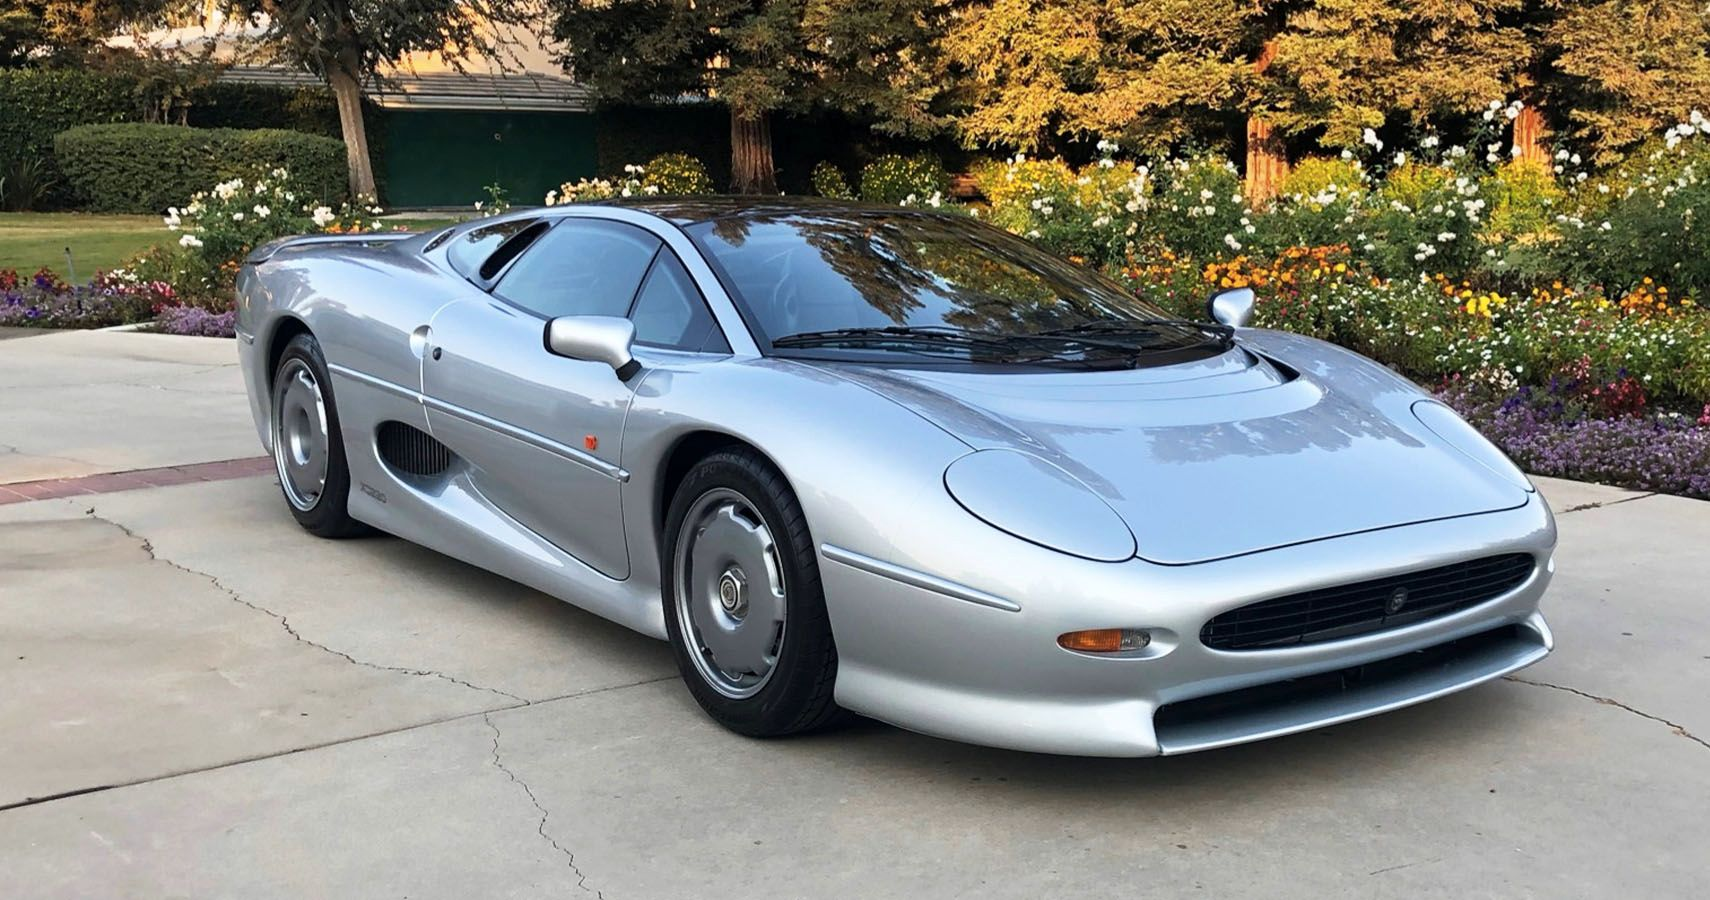 Ultra-Rare Jaguar XJ220 Supercar Hiding Out In Fresno Pops Up On Bring A Trailer